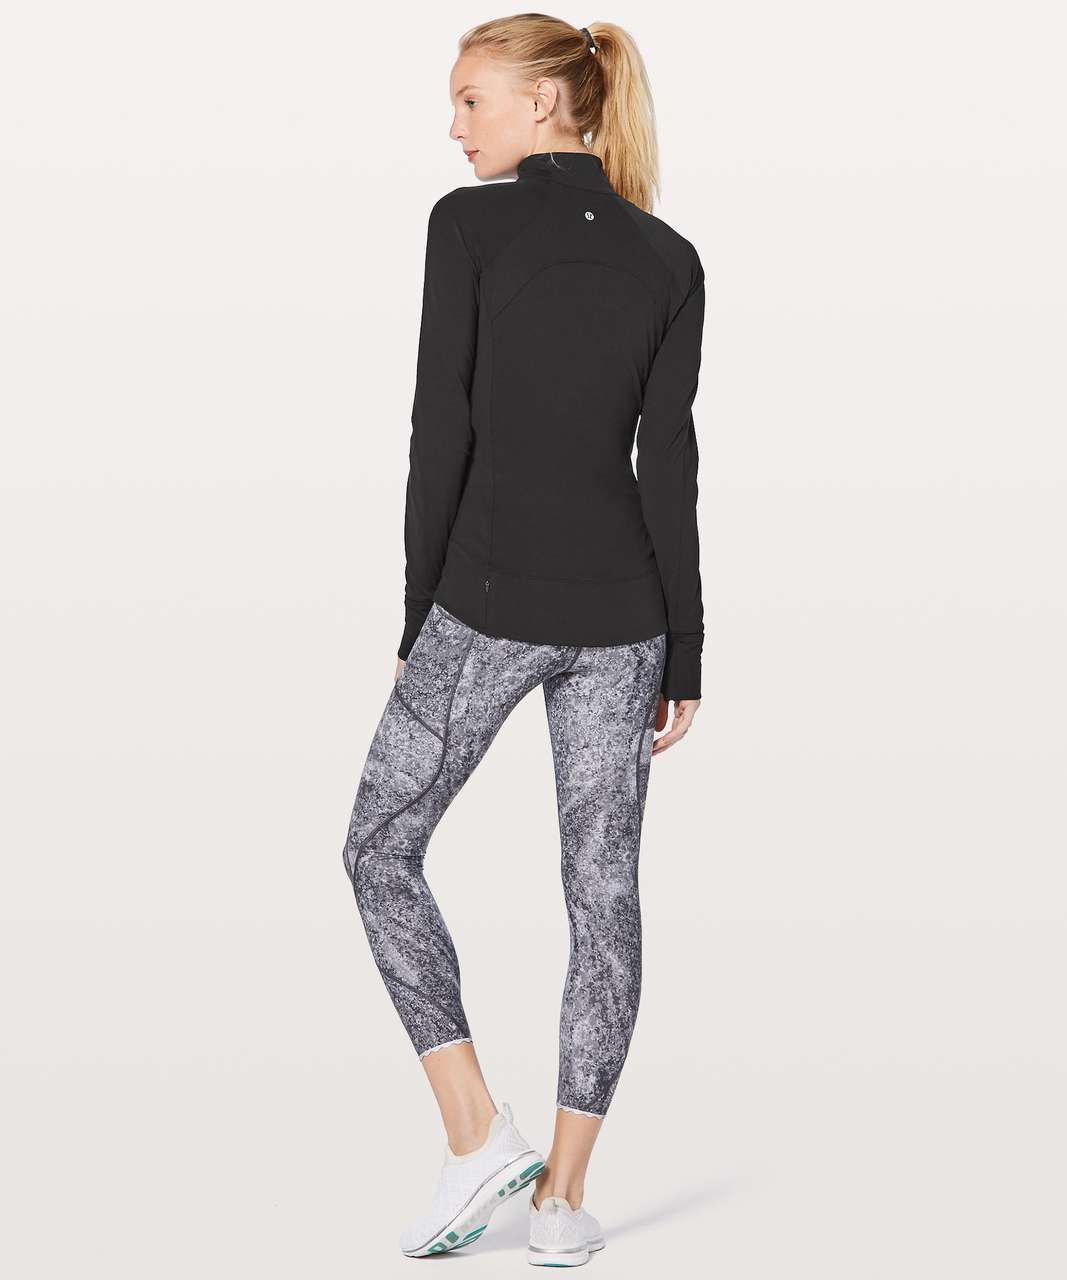 Lululemon Fast As Light 1/2 Zip - Black